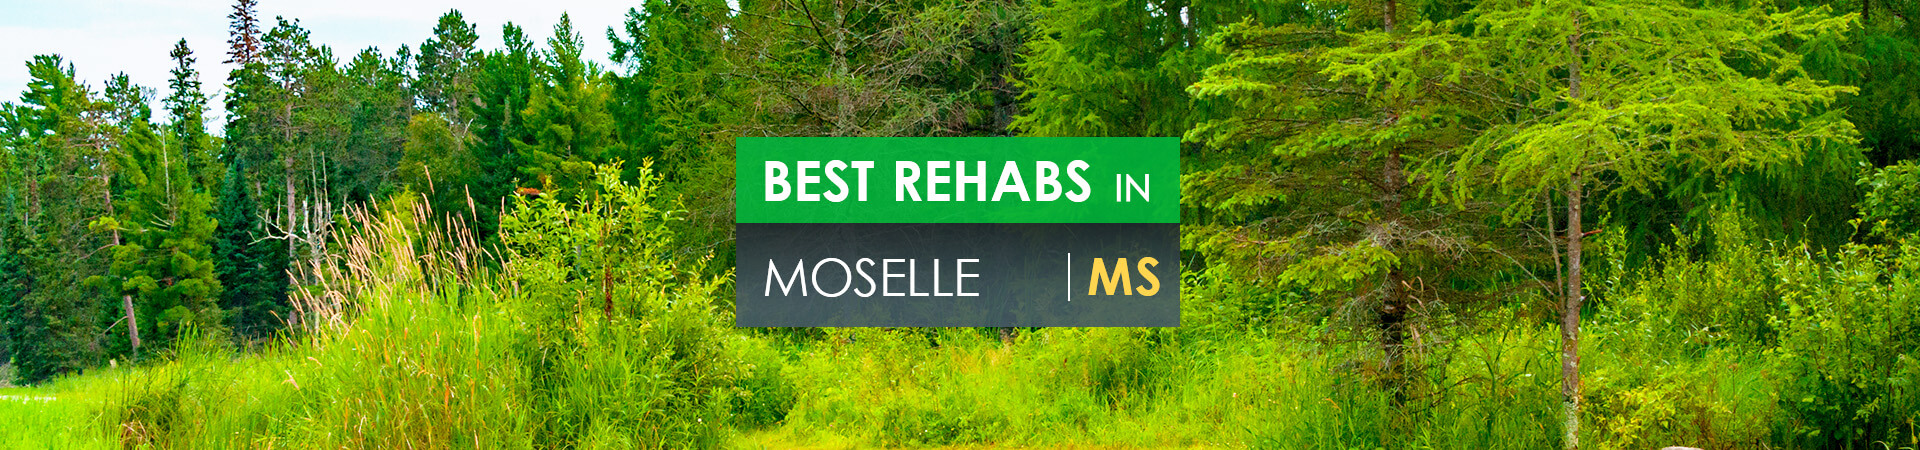 Best rehabs in Moselle, MS